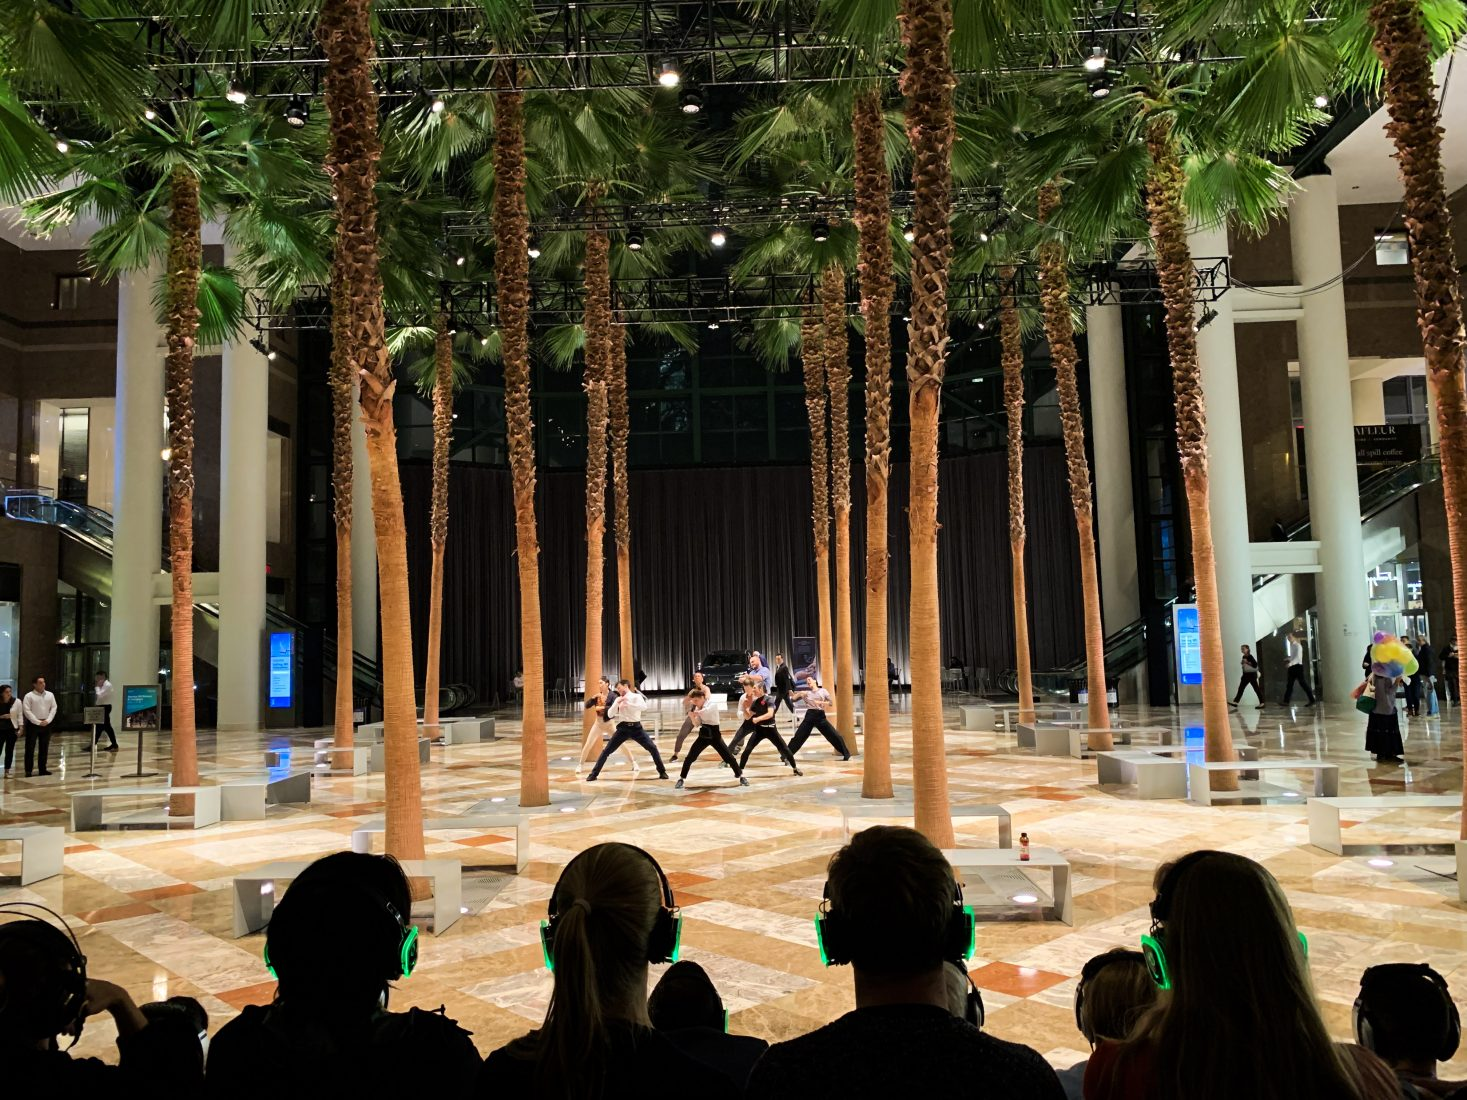 Review: Days Go By, an innovative dance performance at Brookfield Place